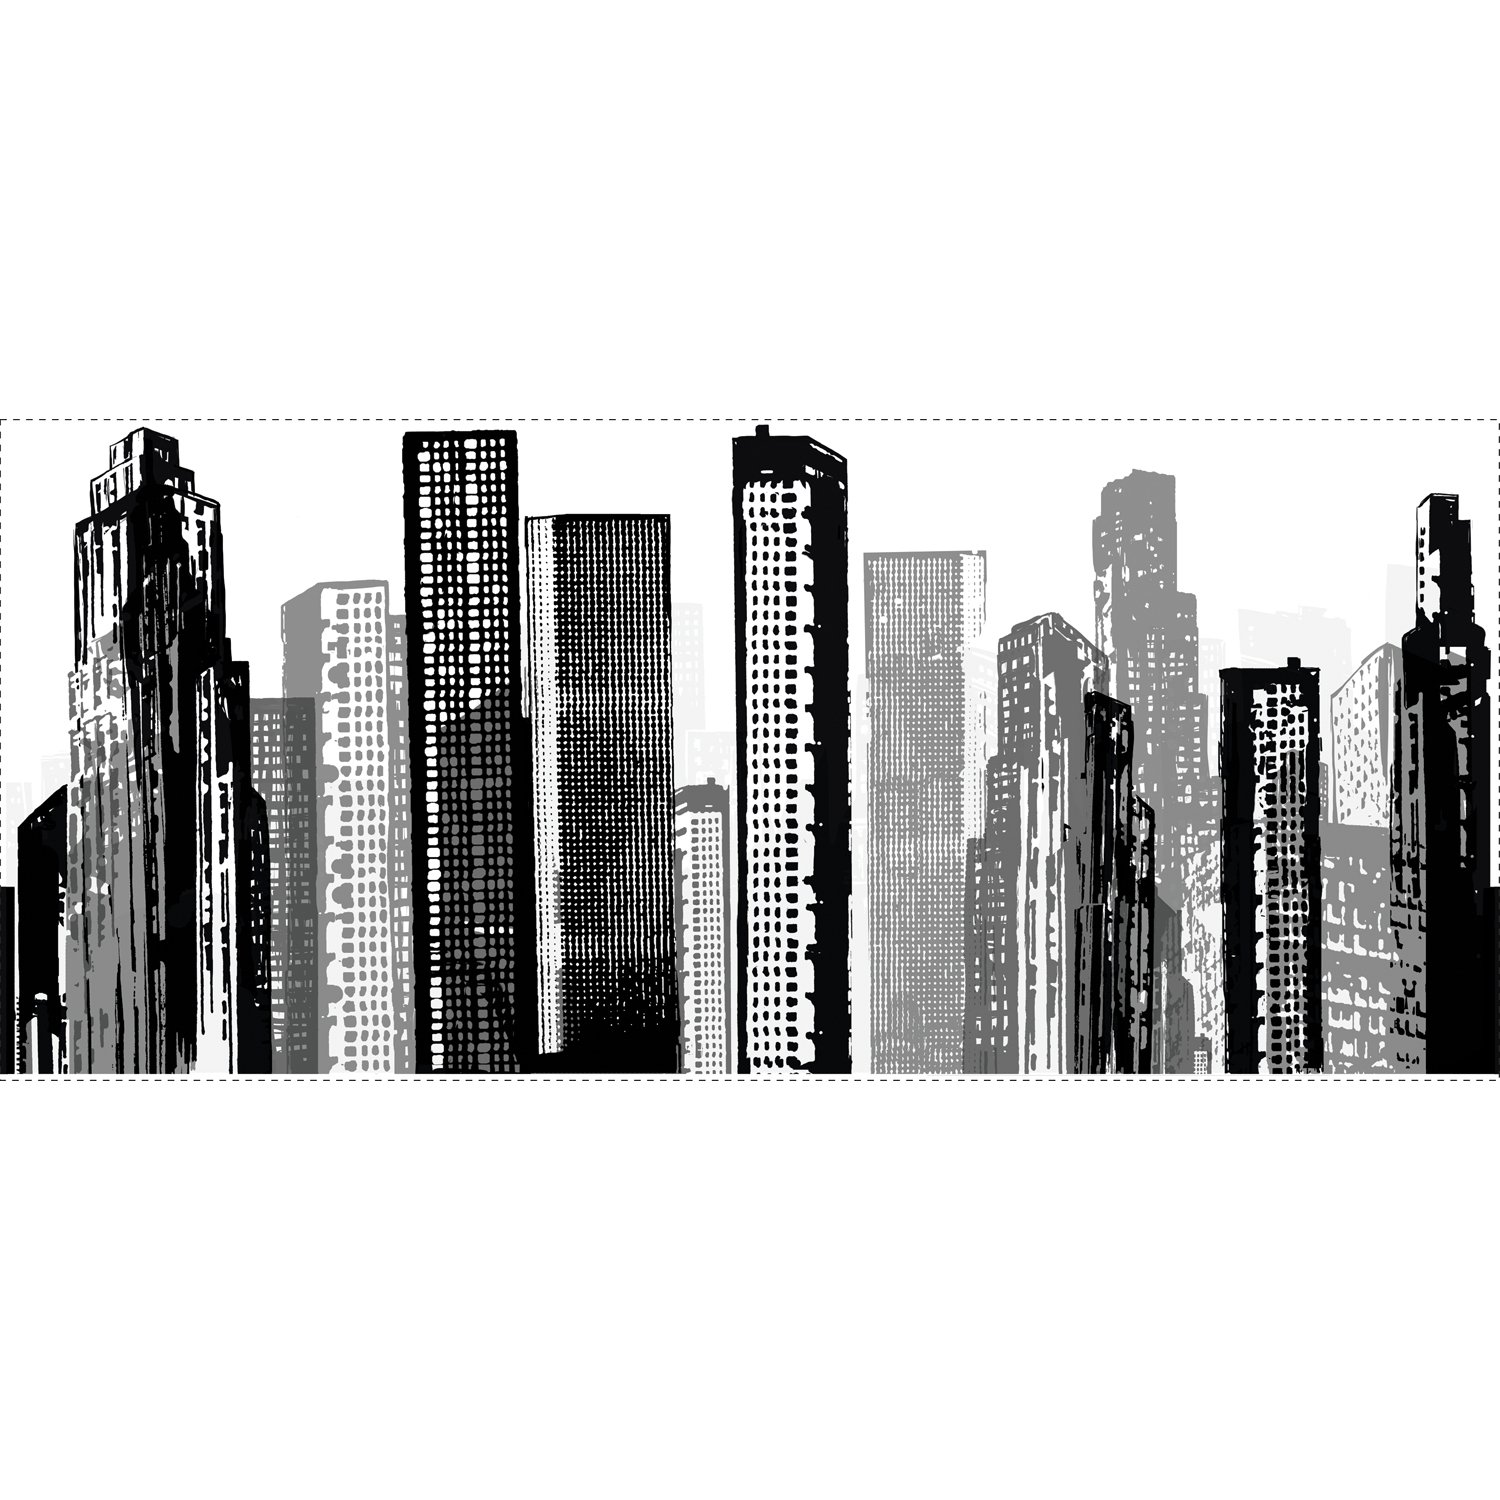 RoomMates RMK1602GM Cityscape Peel And Stick Giant Wall Decal   Wall Decor  Stickers   Amazon.com Part 75